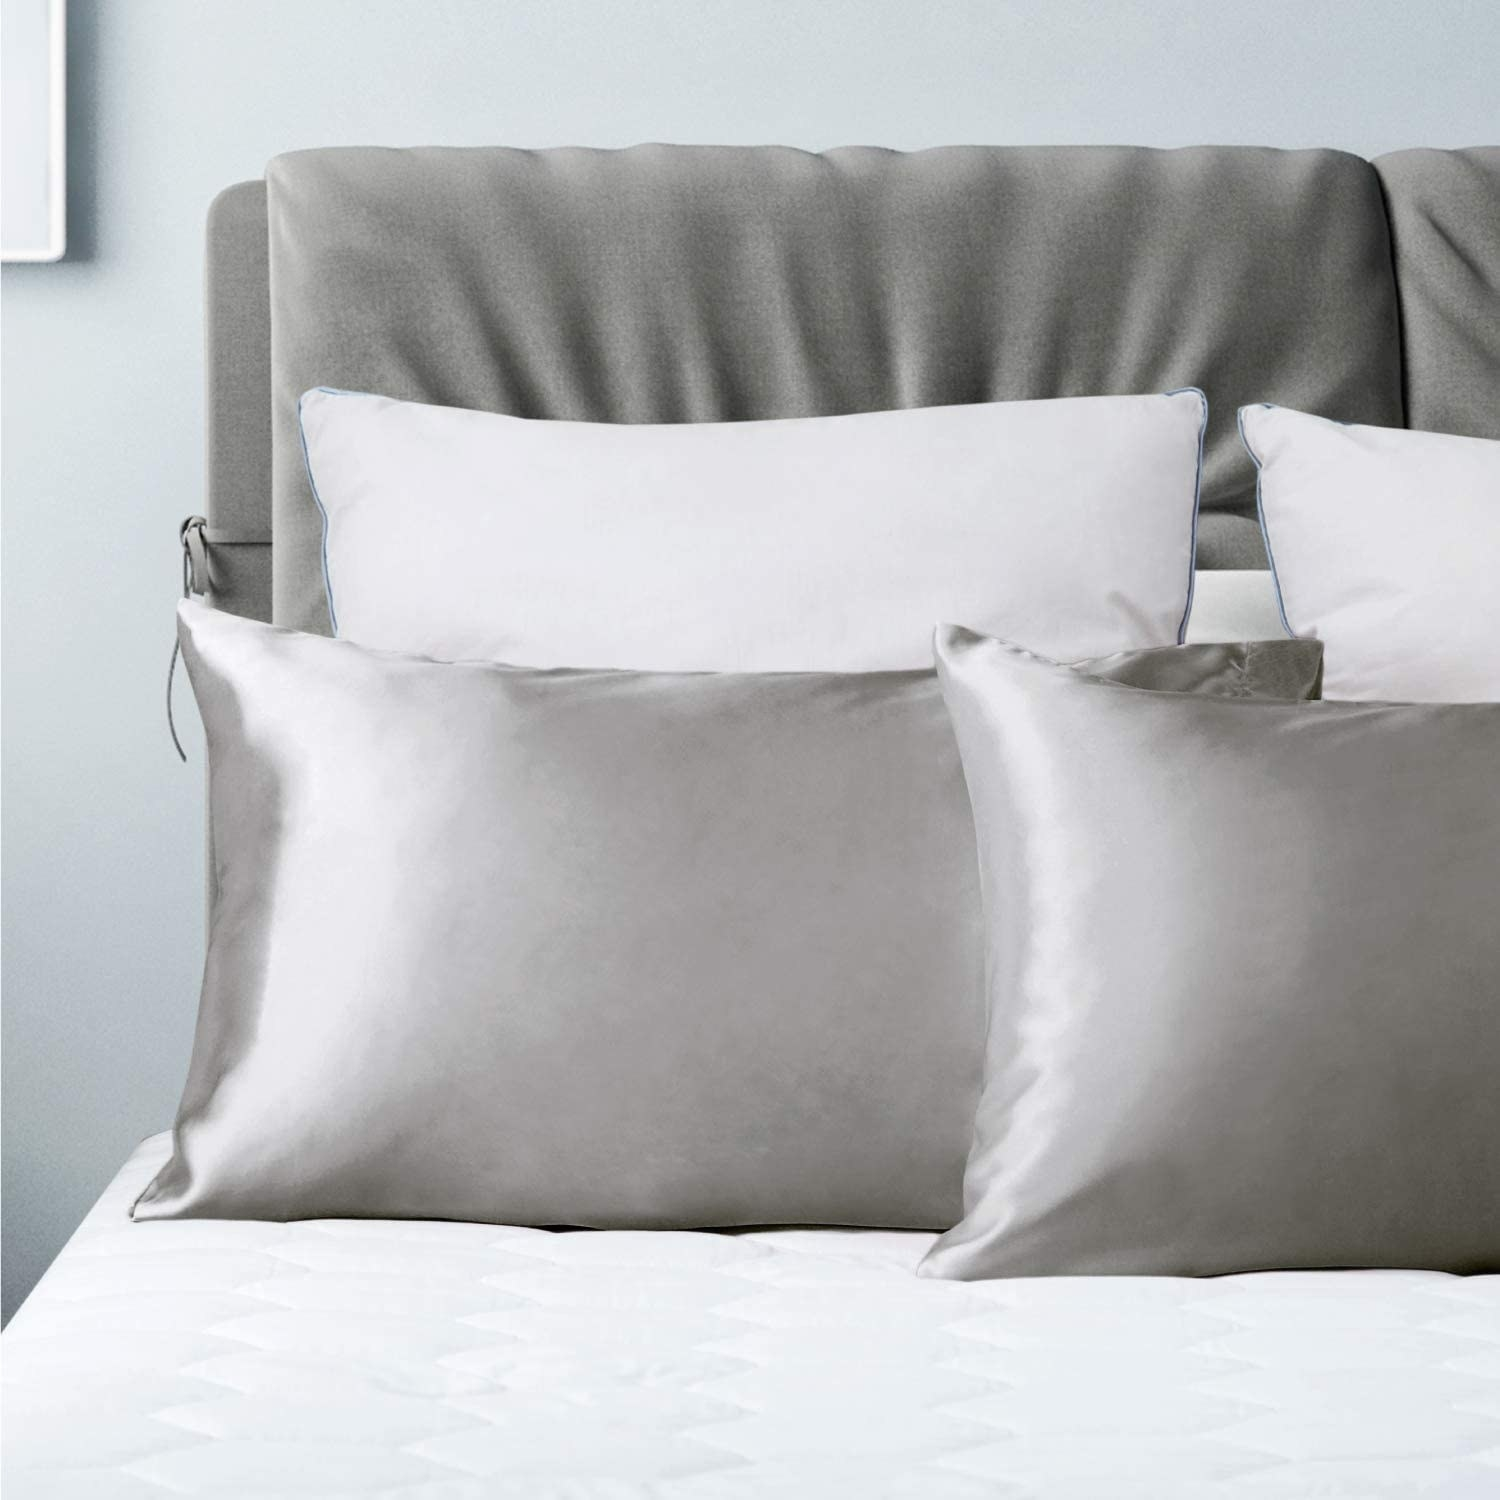 Two satin pillowcases on a bed